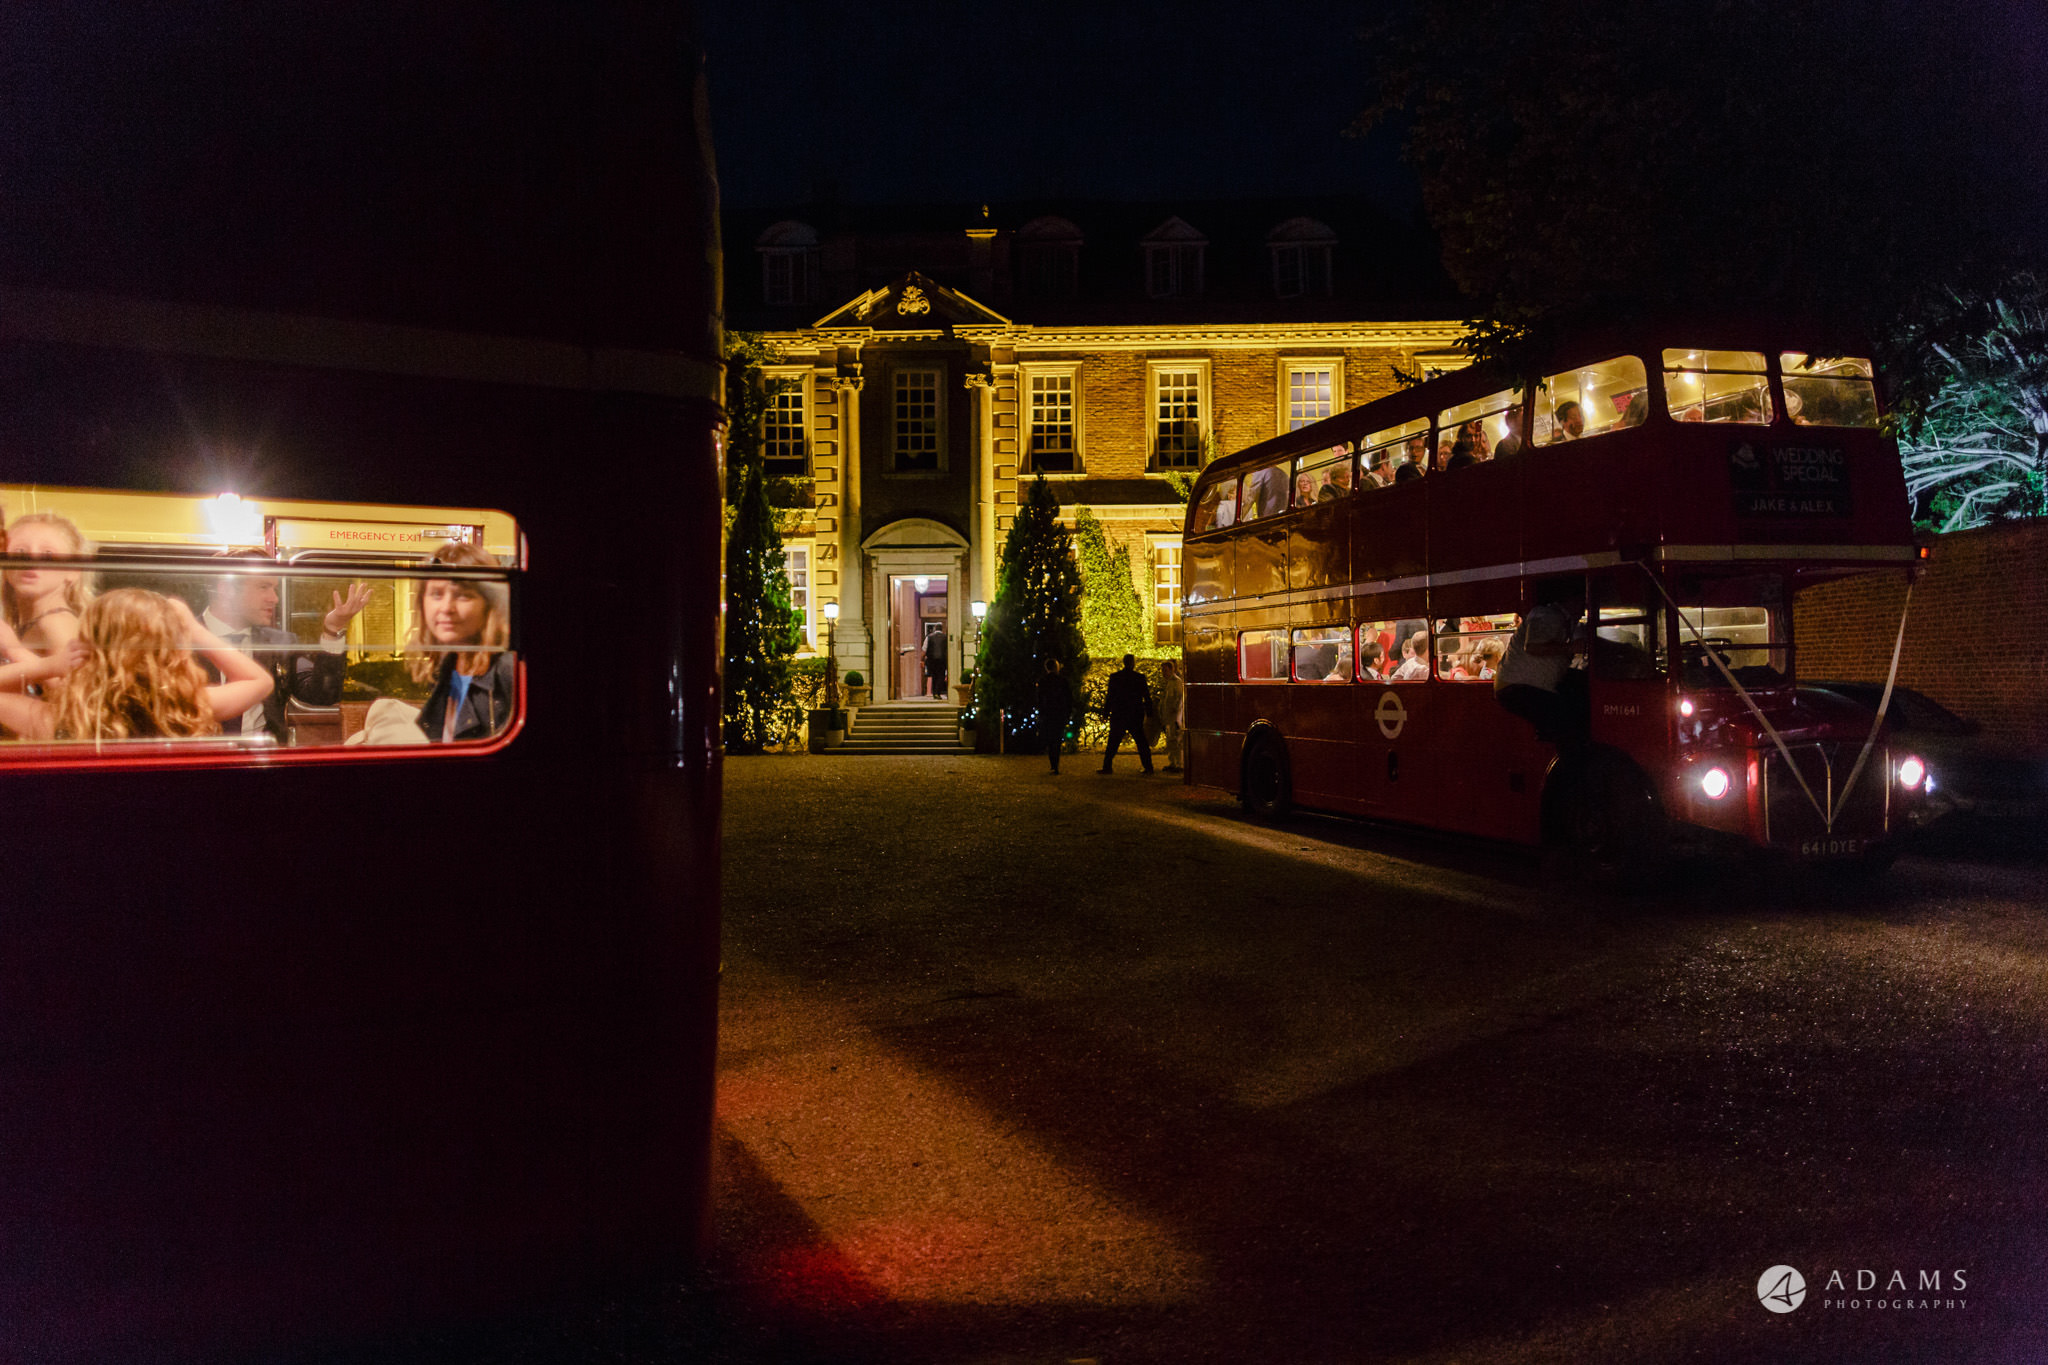 Trinity College Cambridge wedding busses arrive to the evening party hall